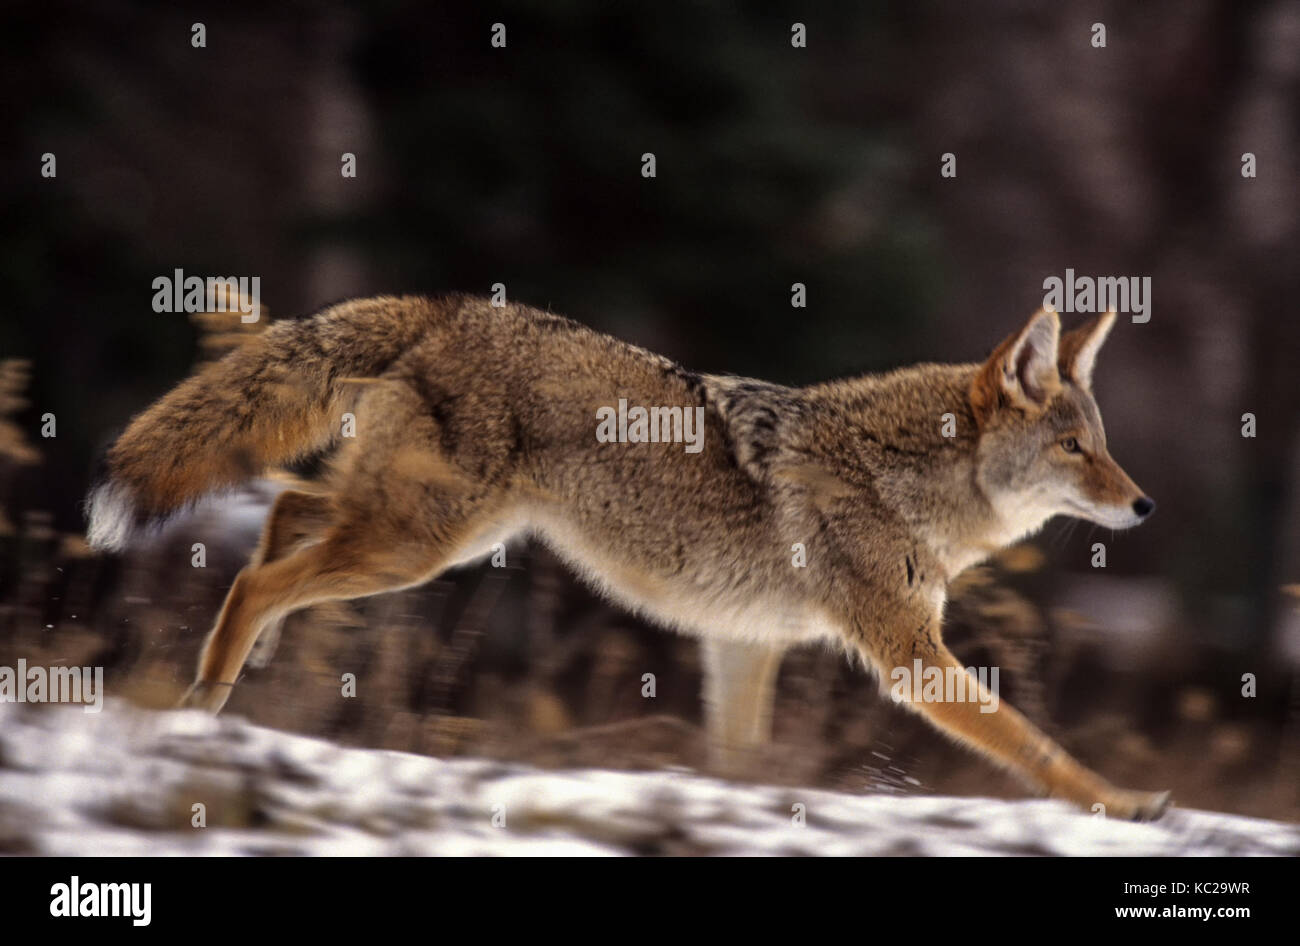 Running Coyote Stock Photos & Running Coyote Stock Images ...  Running Coyote ...